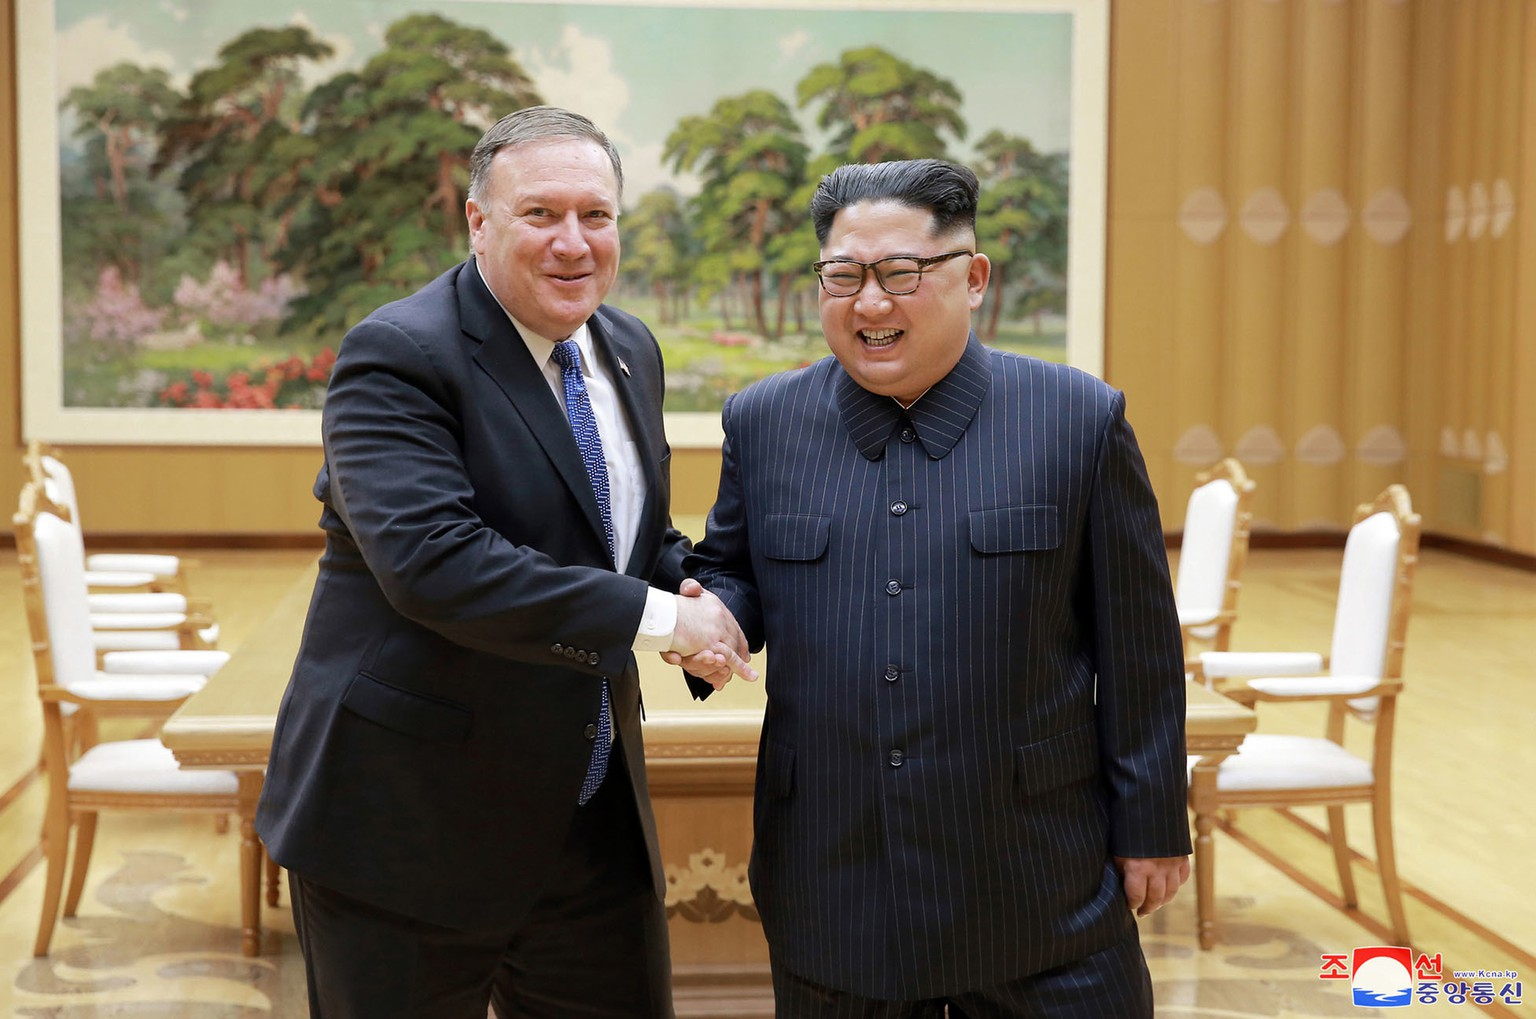 FILE - In this May 9, 2018, file photo provided by the North Korean government, U.S. Secretary of State Mike Pompeo, left, shakes hands with North Korean leader Kim Jong Un during a meeting at Workers' Party of Korea headquarters in Pyongyang, North Korea. After a few months of rapprochement, North Korea abruptly called off scheduled high-level talks with South Korea on Wednesday, May 16, 2018,  and warned the U.S. that a planned summit with President Donald Trump could be at risk. Independent journalists were not given access to cover the event depicted in this image distributed by the North Korean government. The content of this image is as provided and cannot be independently verified. Korean language watermark on image as provided by source reads: